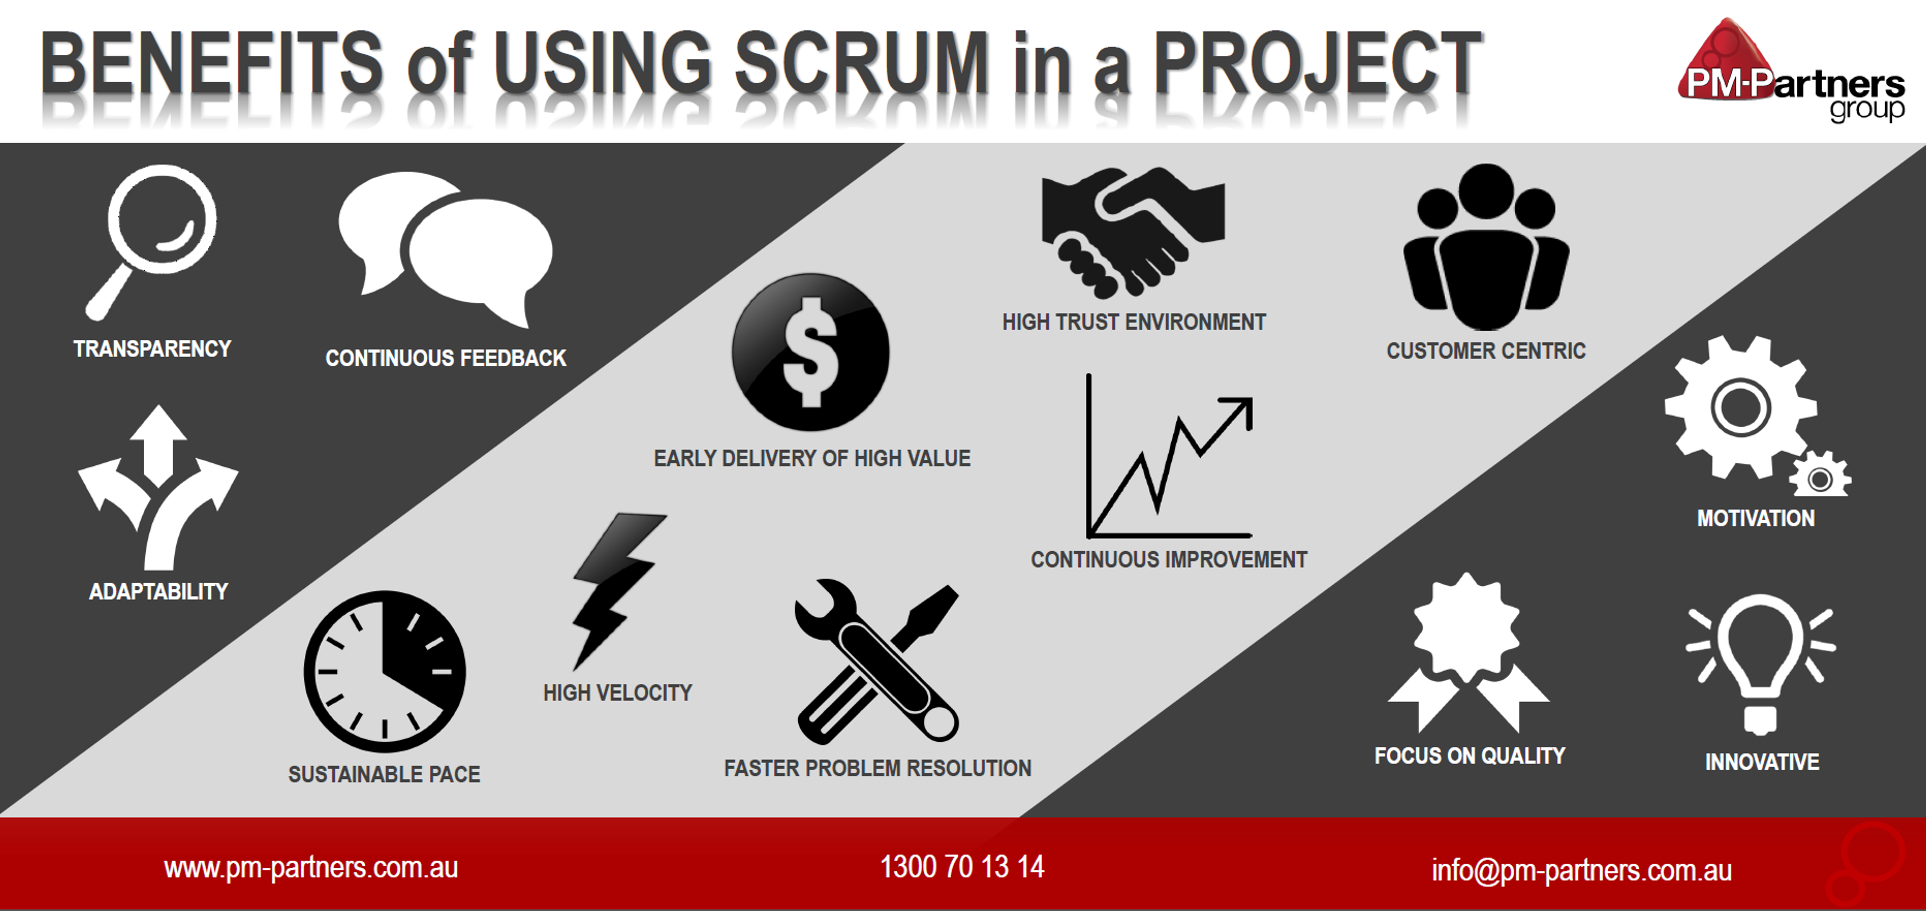 The Benefits Of Using Scrum In A Project